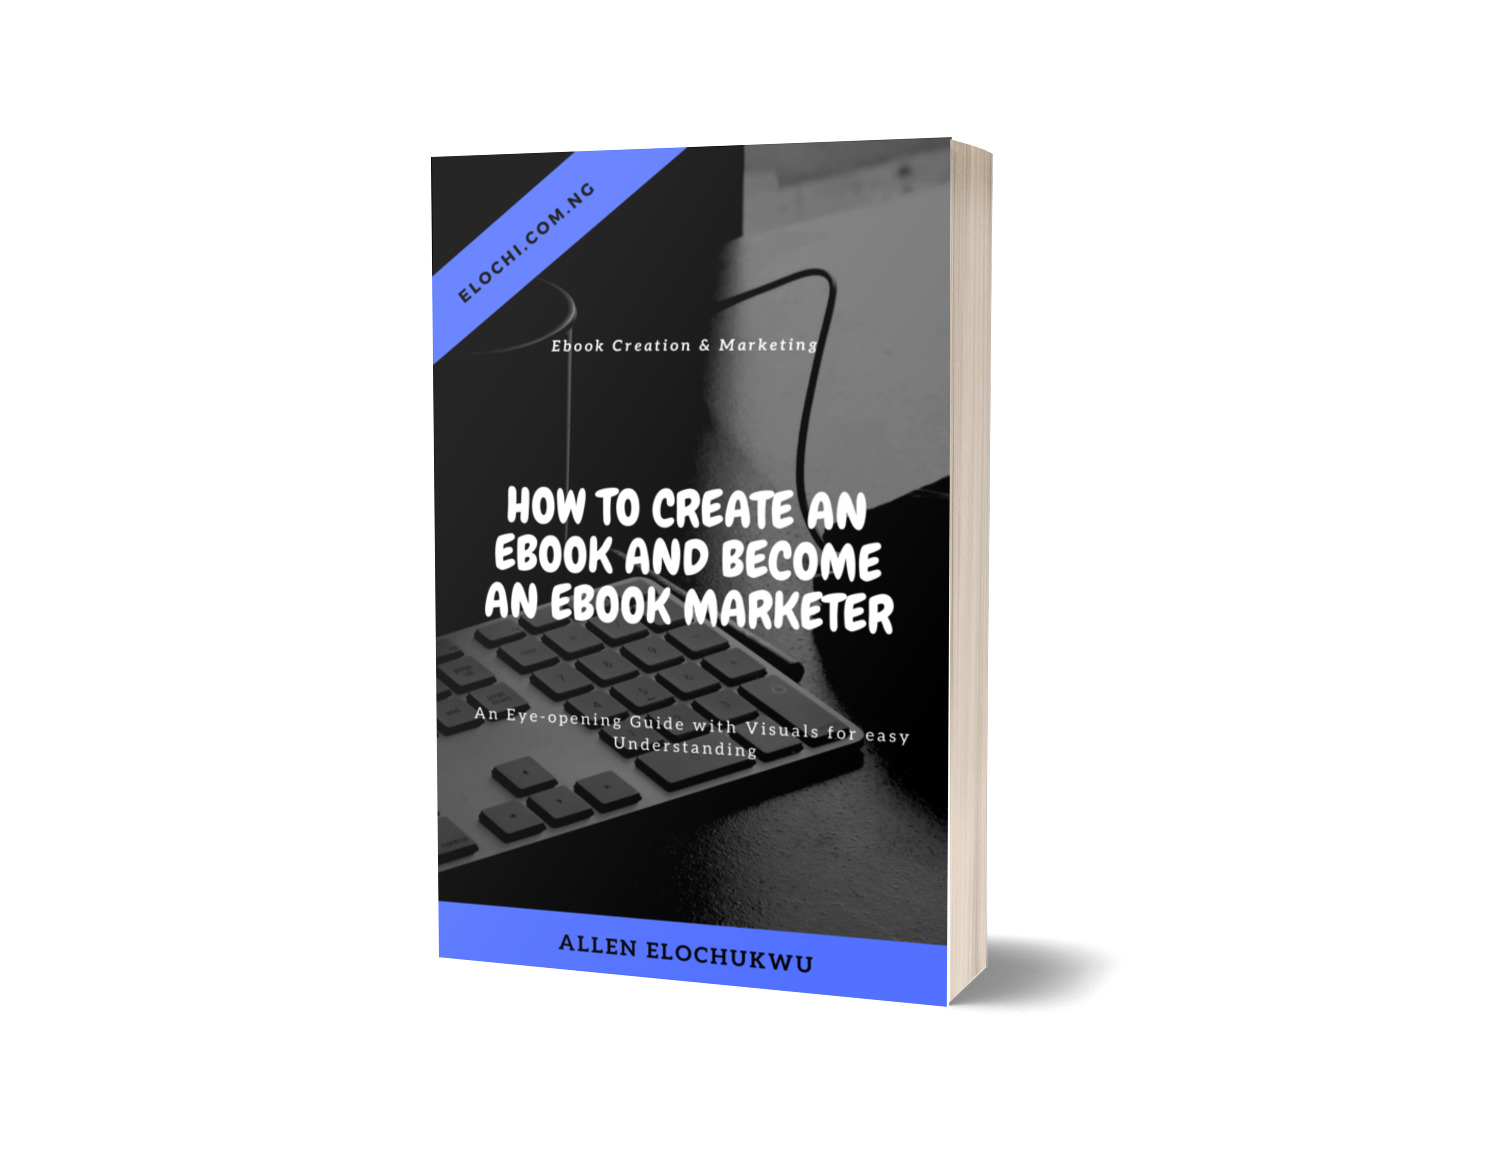 How to create an ebook to sell and make money online